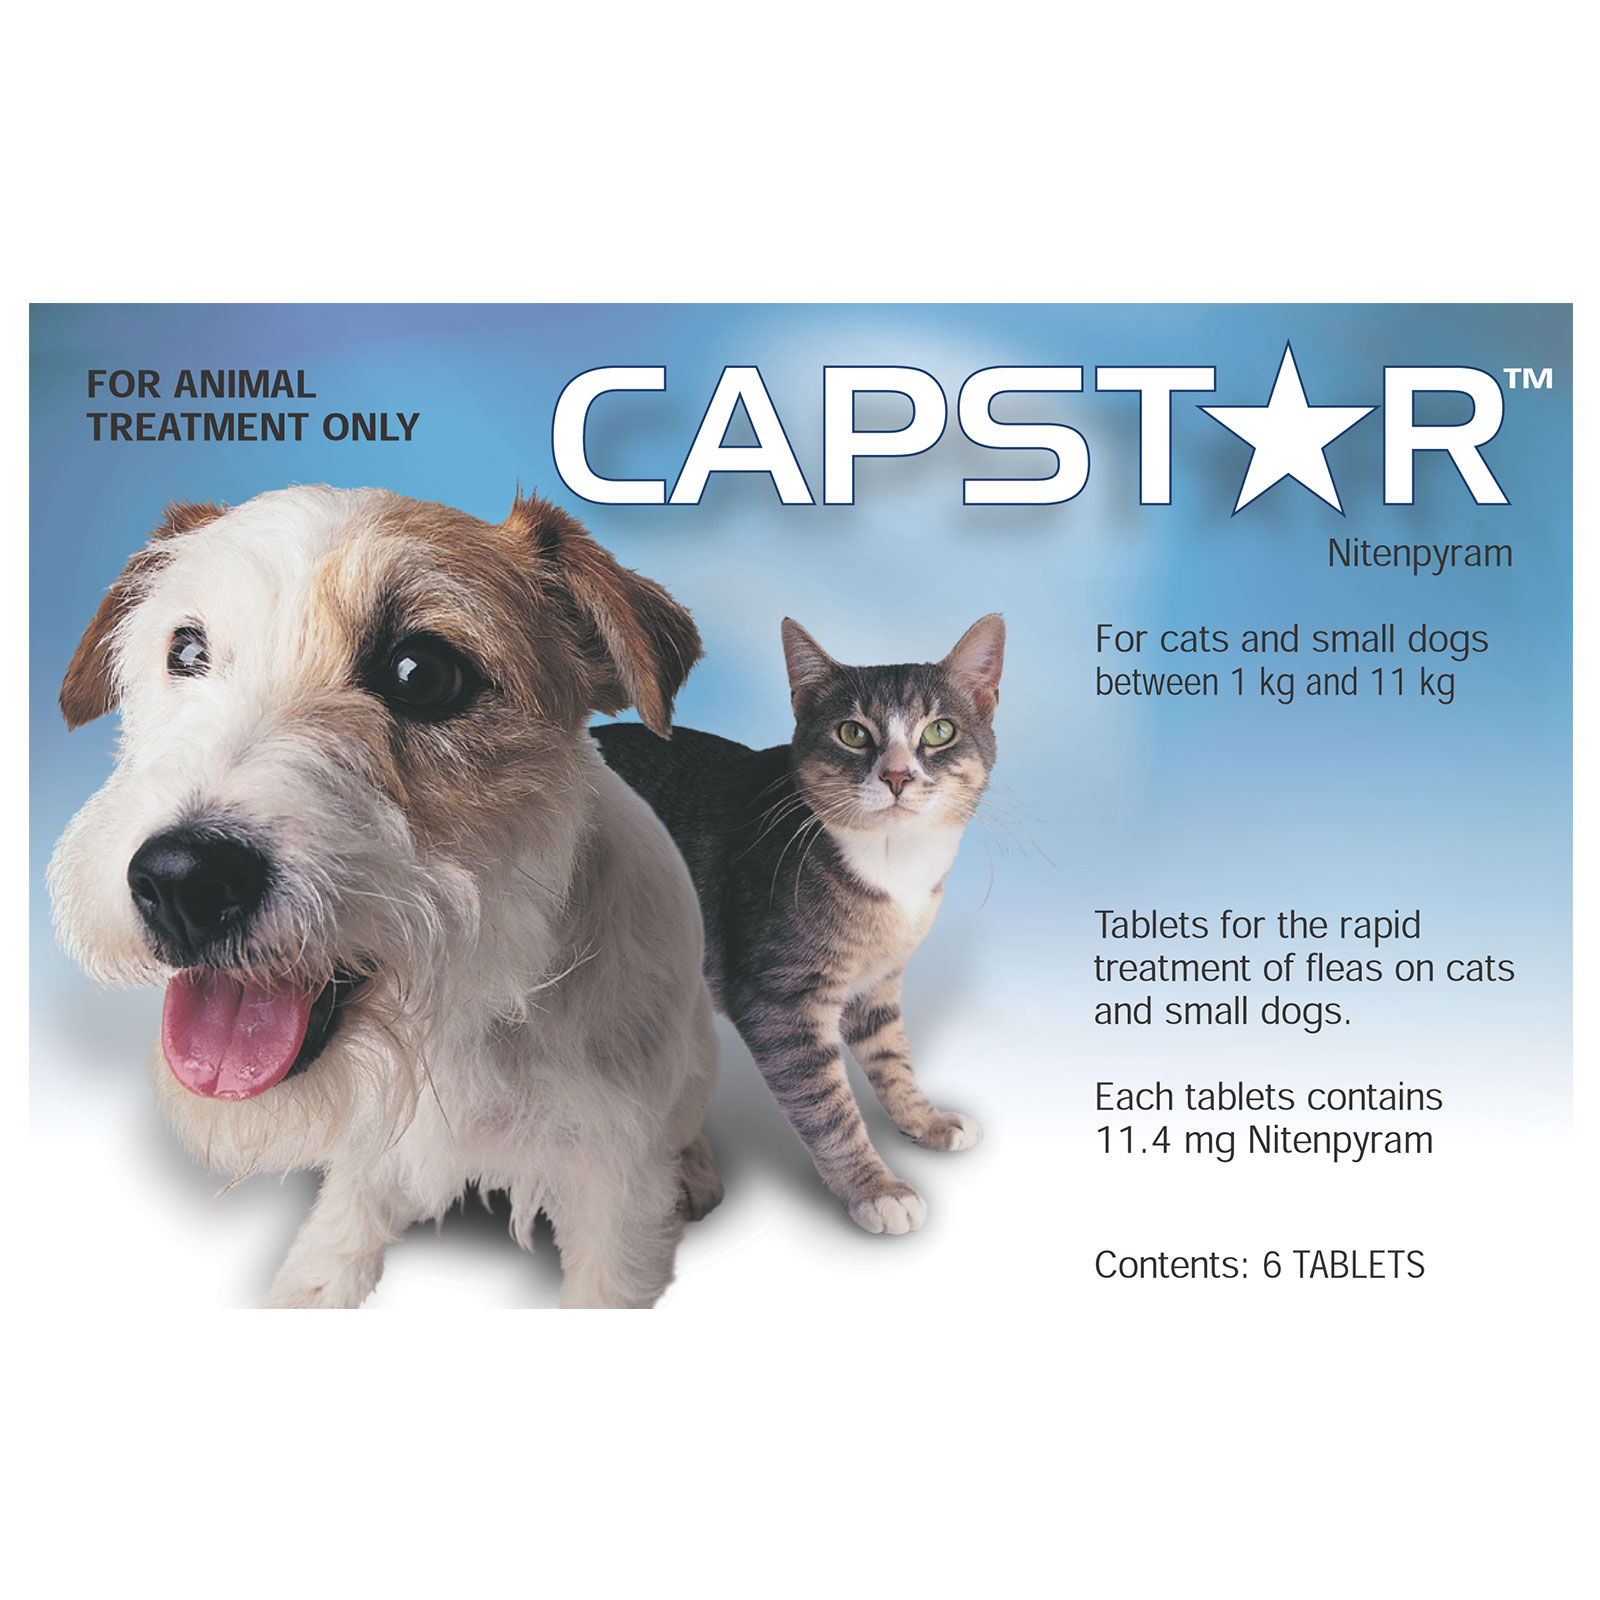 Capstar Flea Control Tablets for Cats And Small Dogs 0.5-11Kg